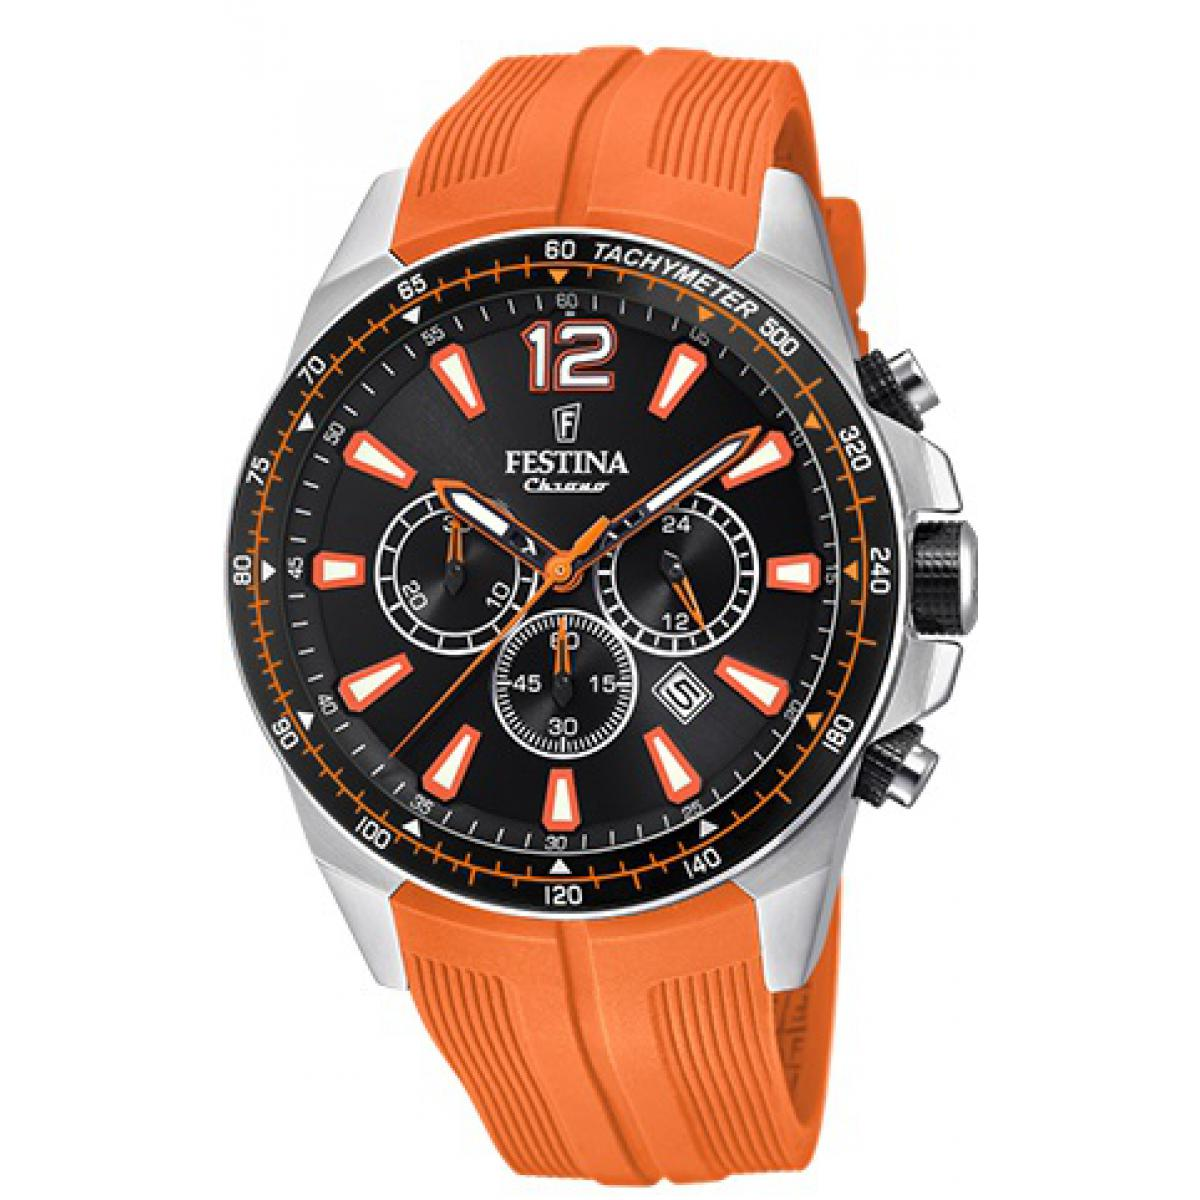 Montre Festina Originals F20376-5 - Montre Chronographe Dateur Orange Homme